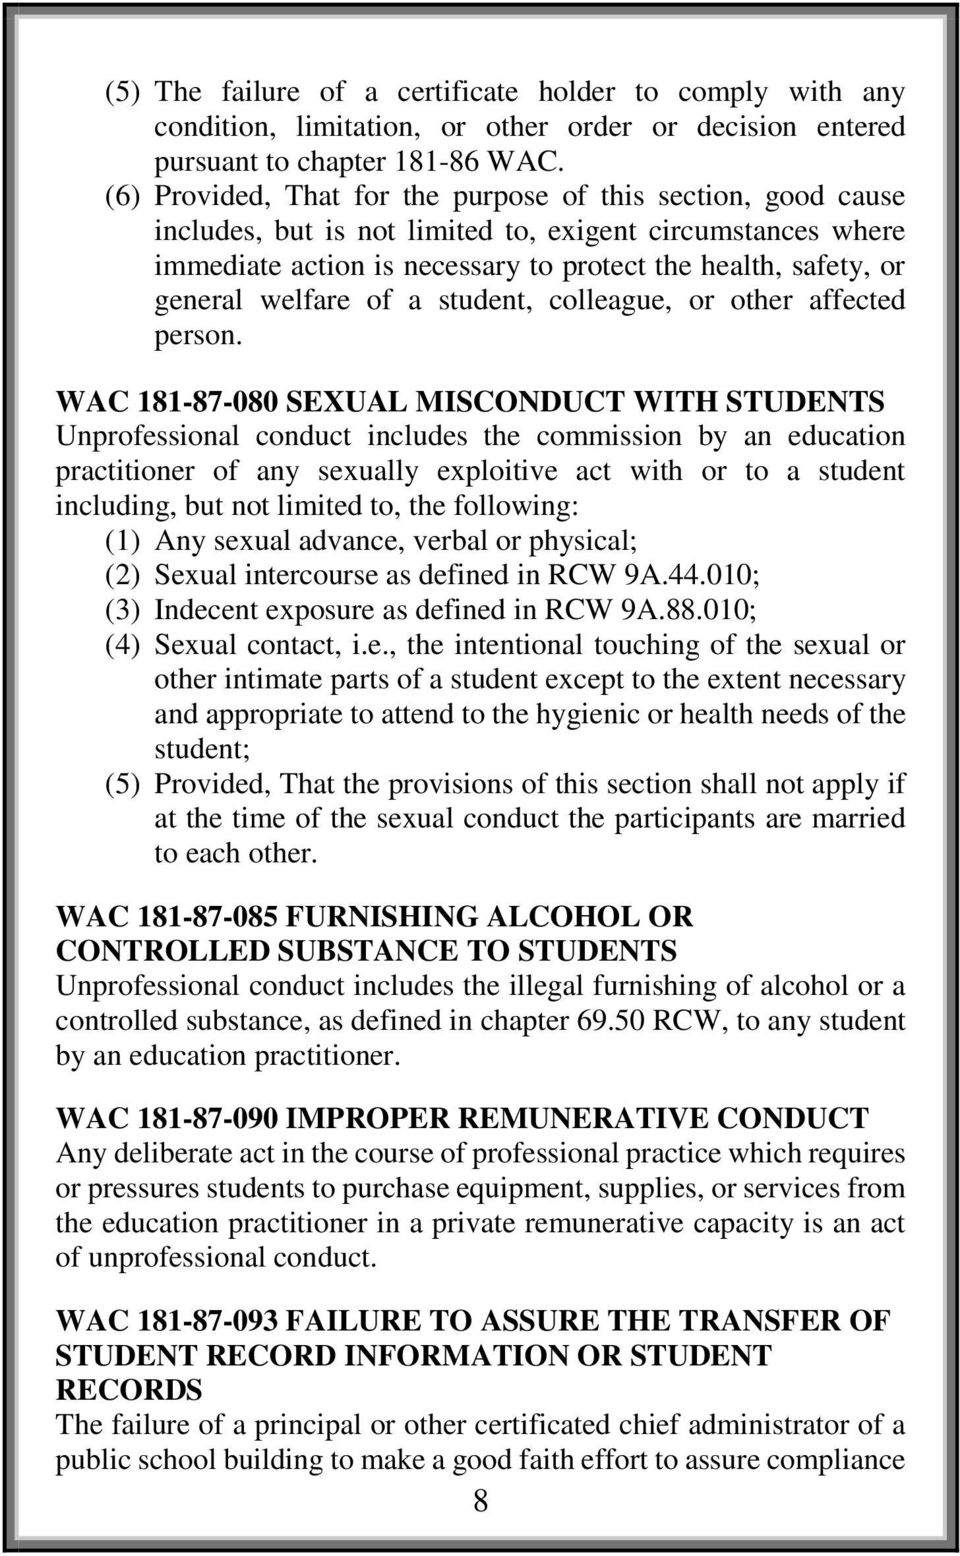 welfare of a student, colleague, or other affected person.